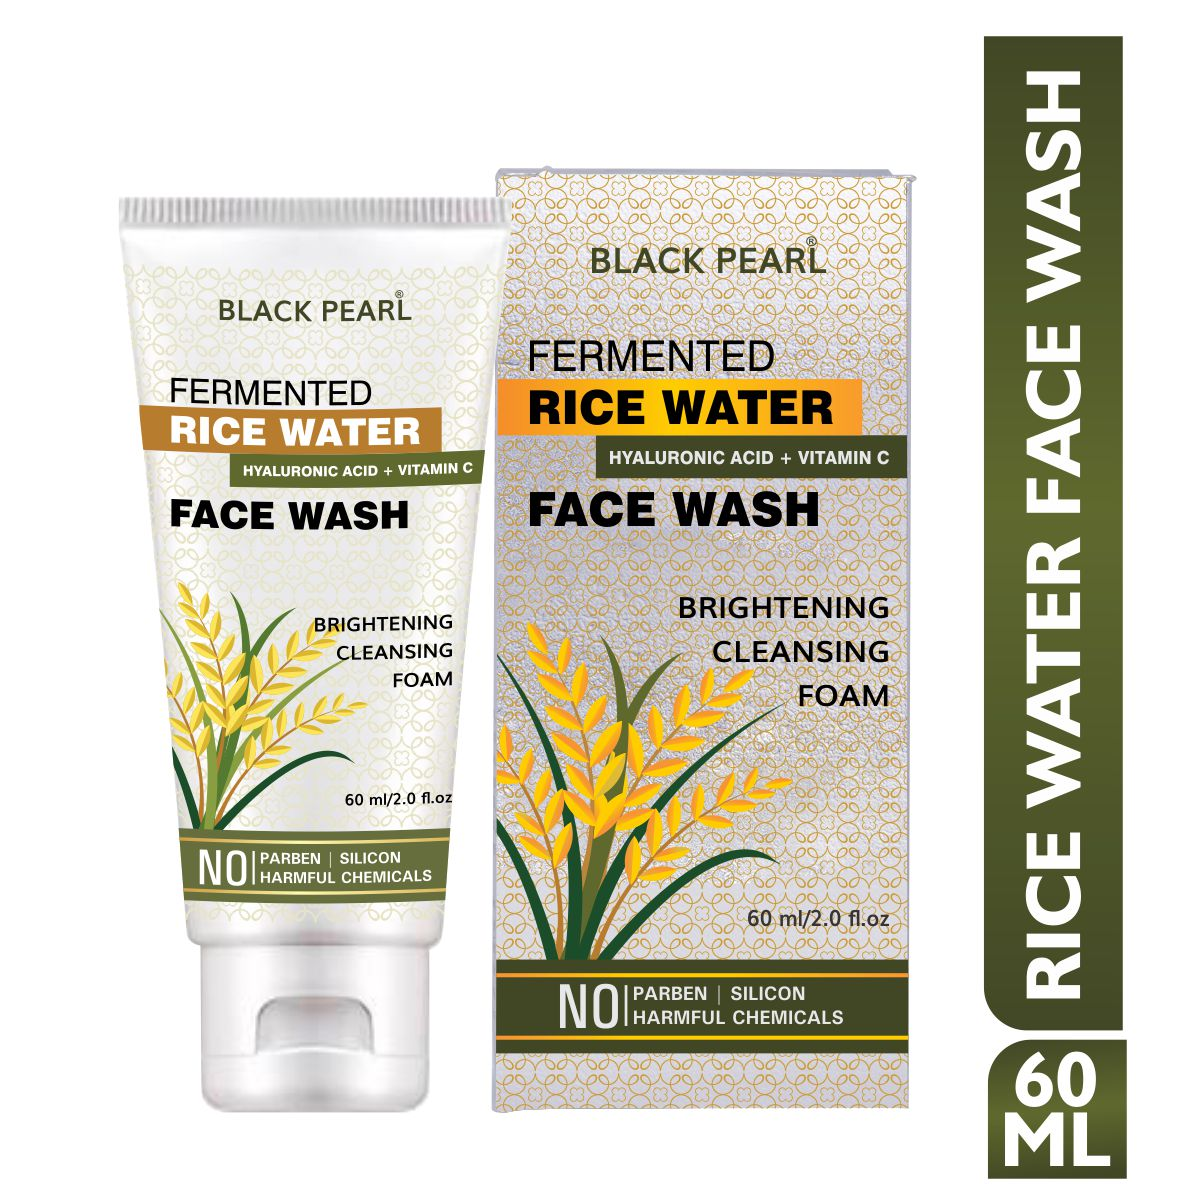 RICE WATER FACE WASH